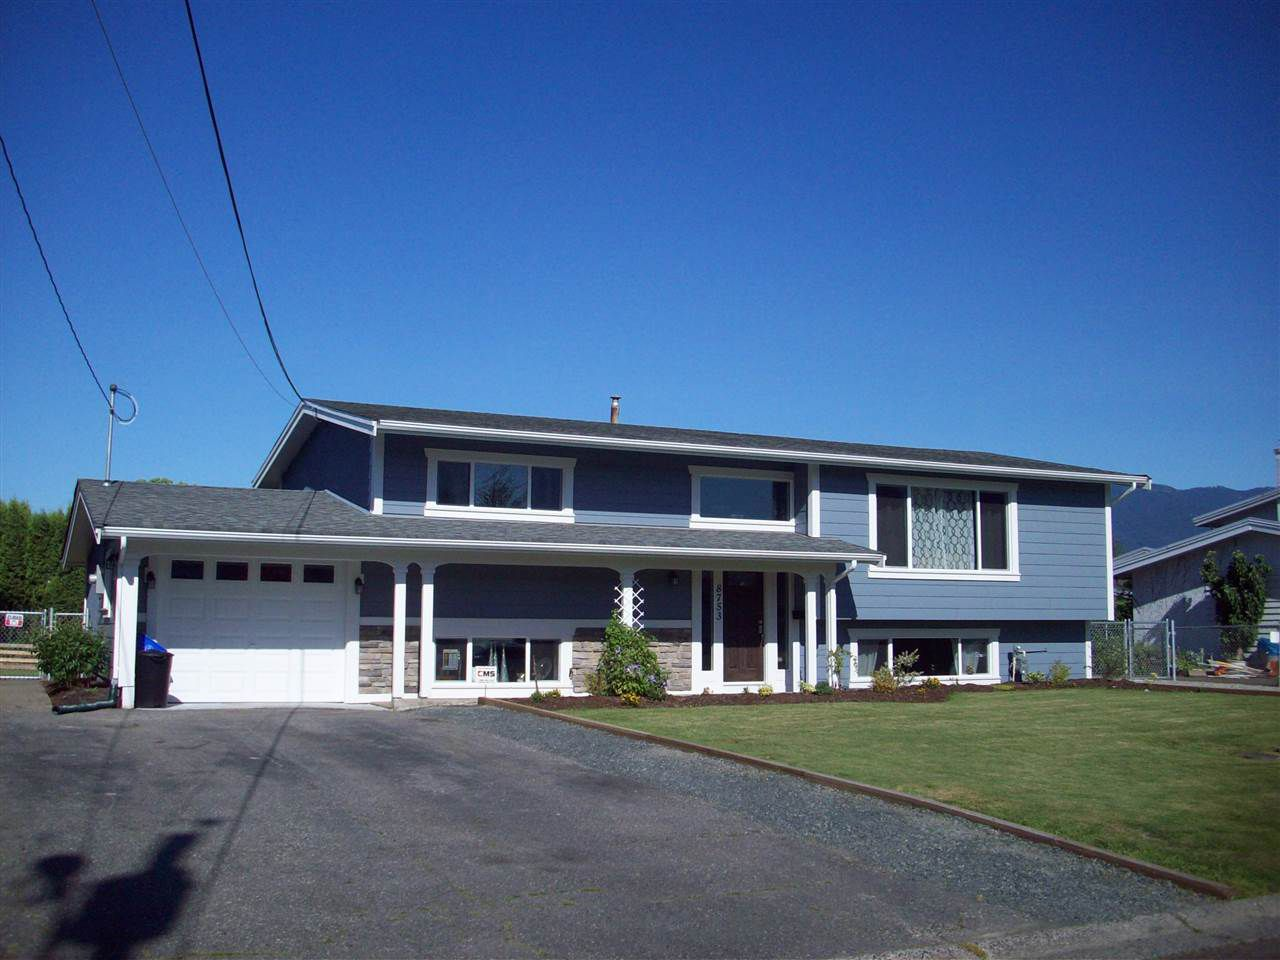 Main Photo: 8753 BUTCHART STREET in Chilliwack: Chilliwack E Young-Yale House for sale : MLS®# R2068310